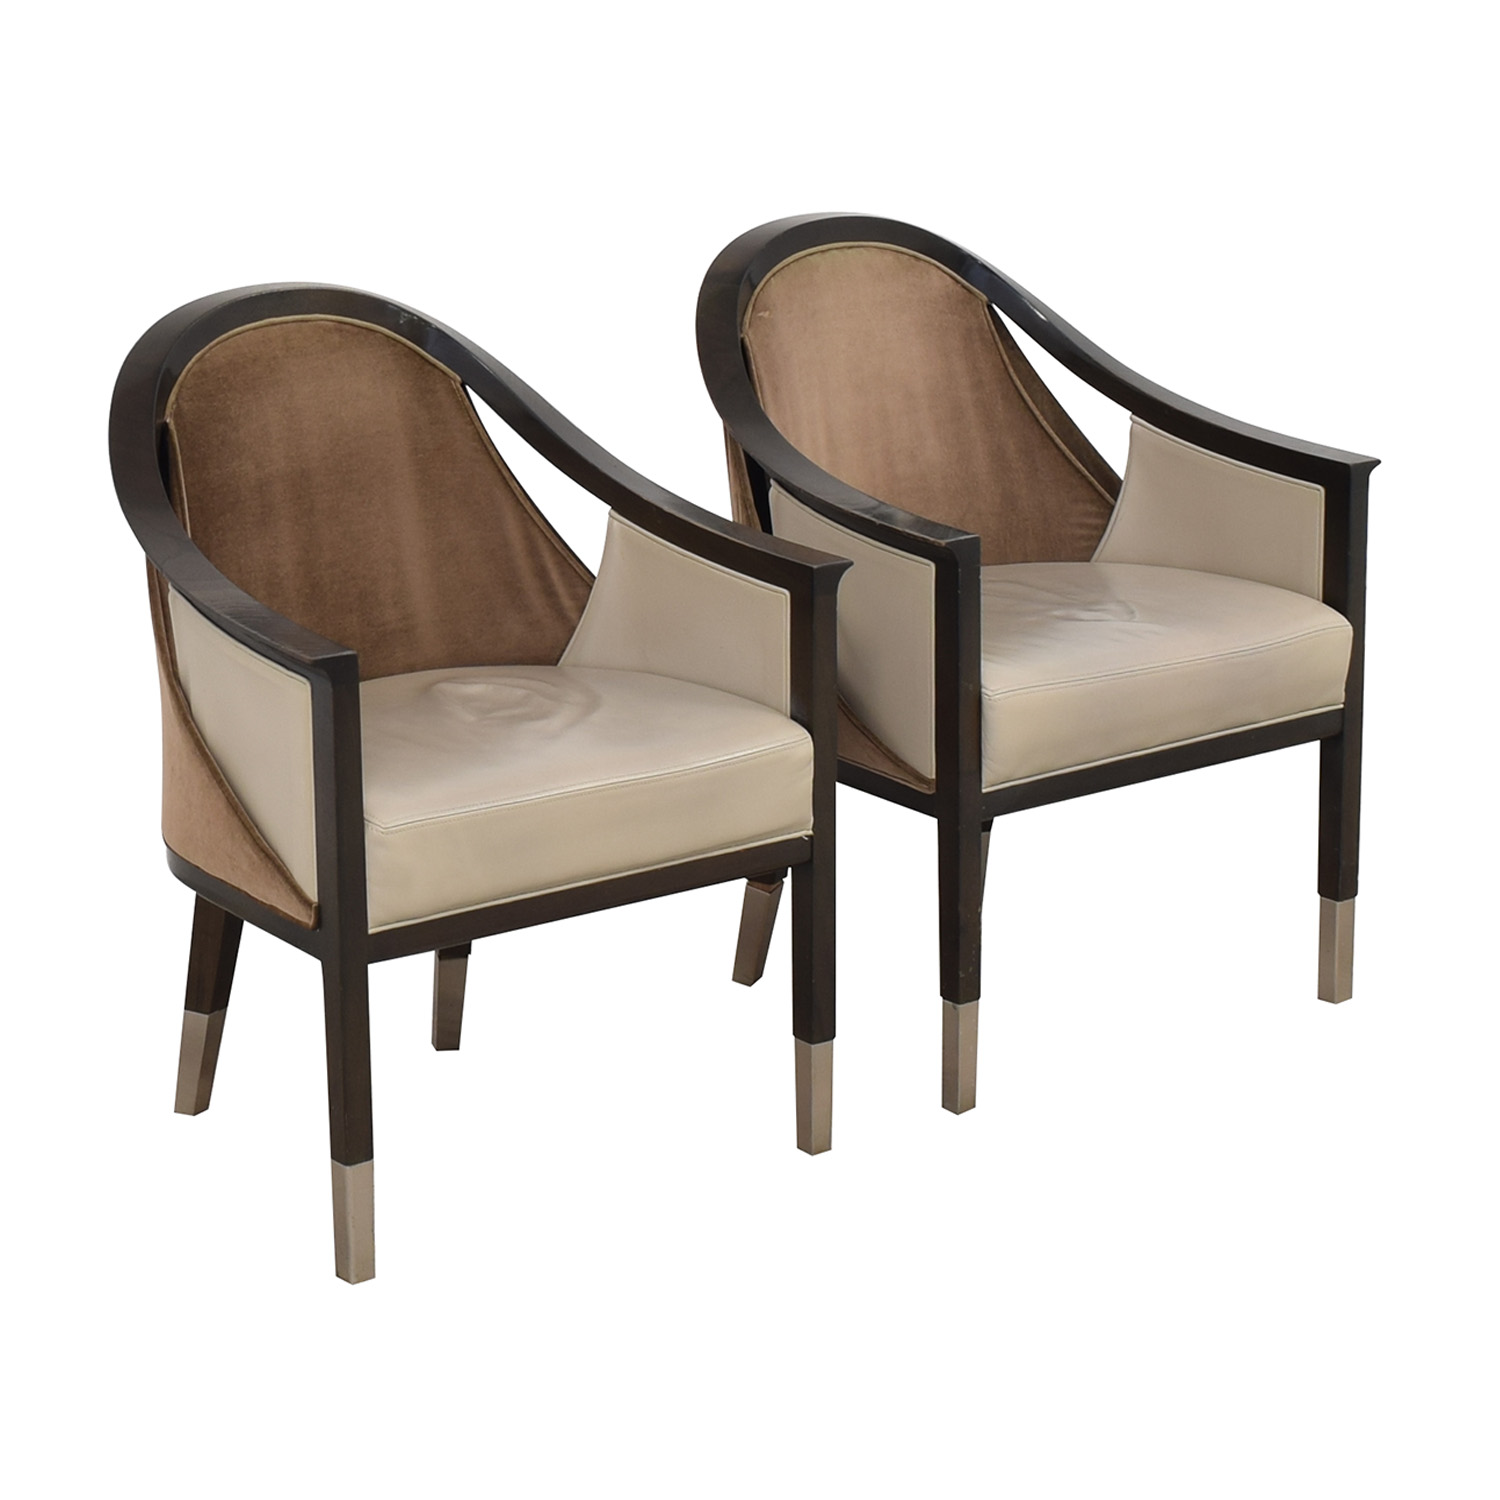 Allied Form Works Allied Works Eleven Madison Park Dining Room Chairs discount